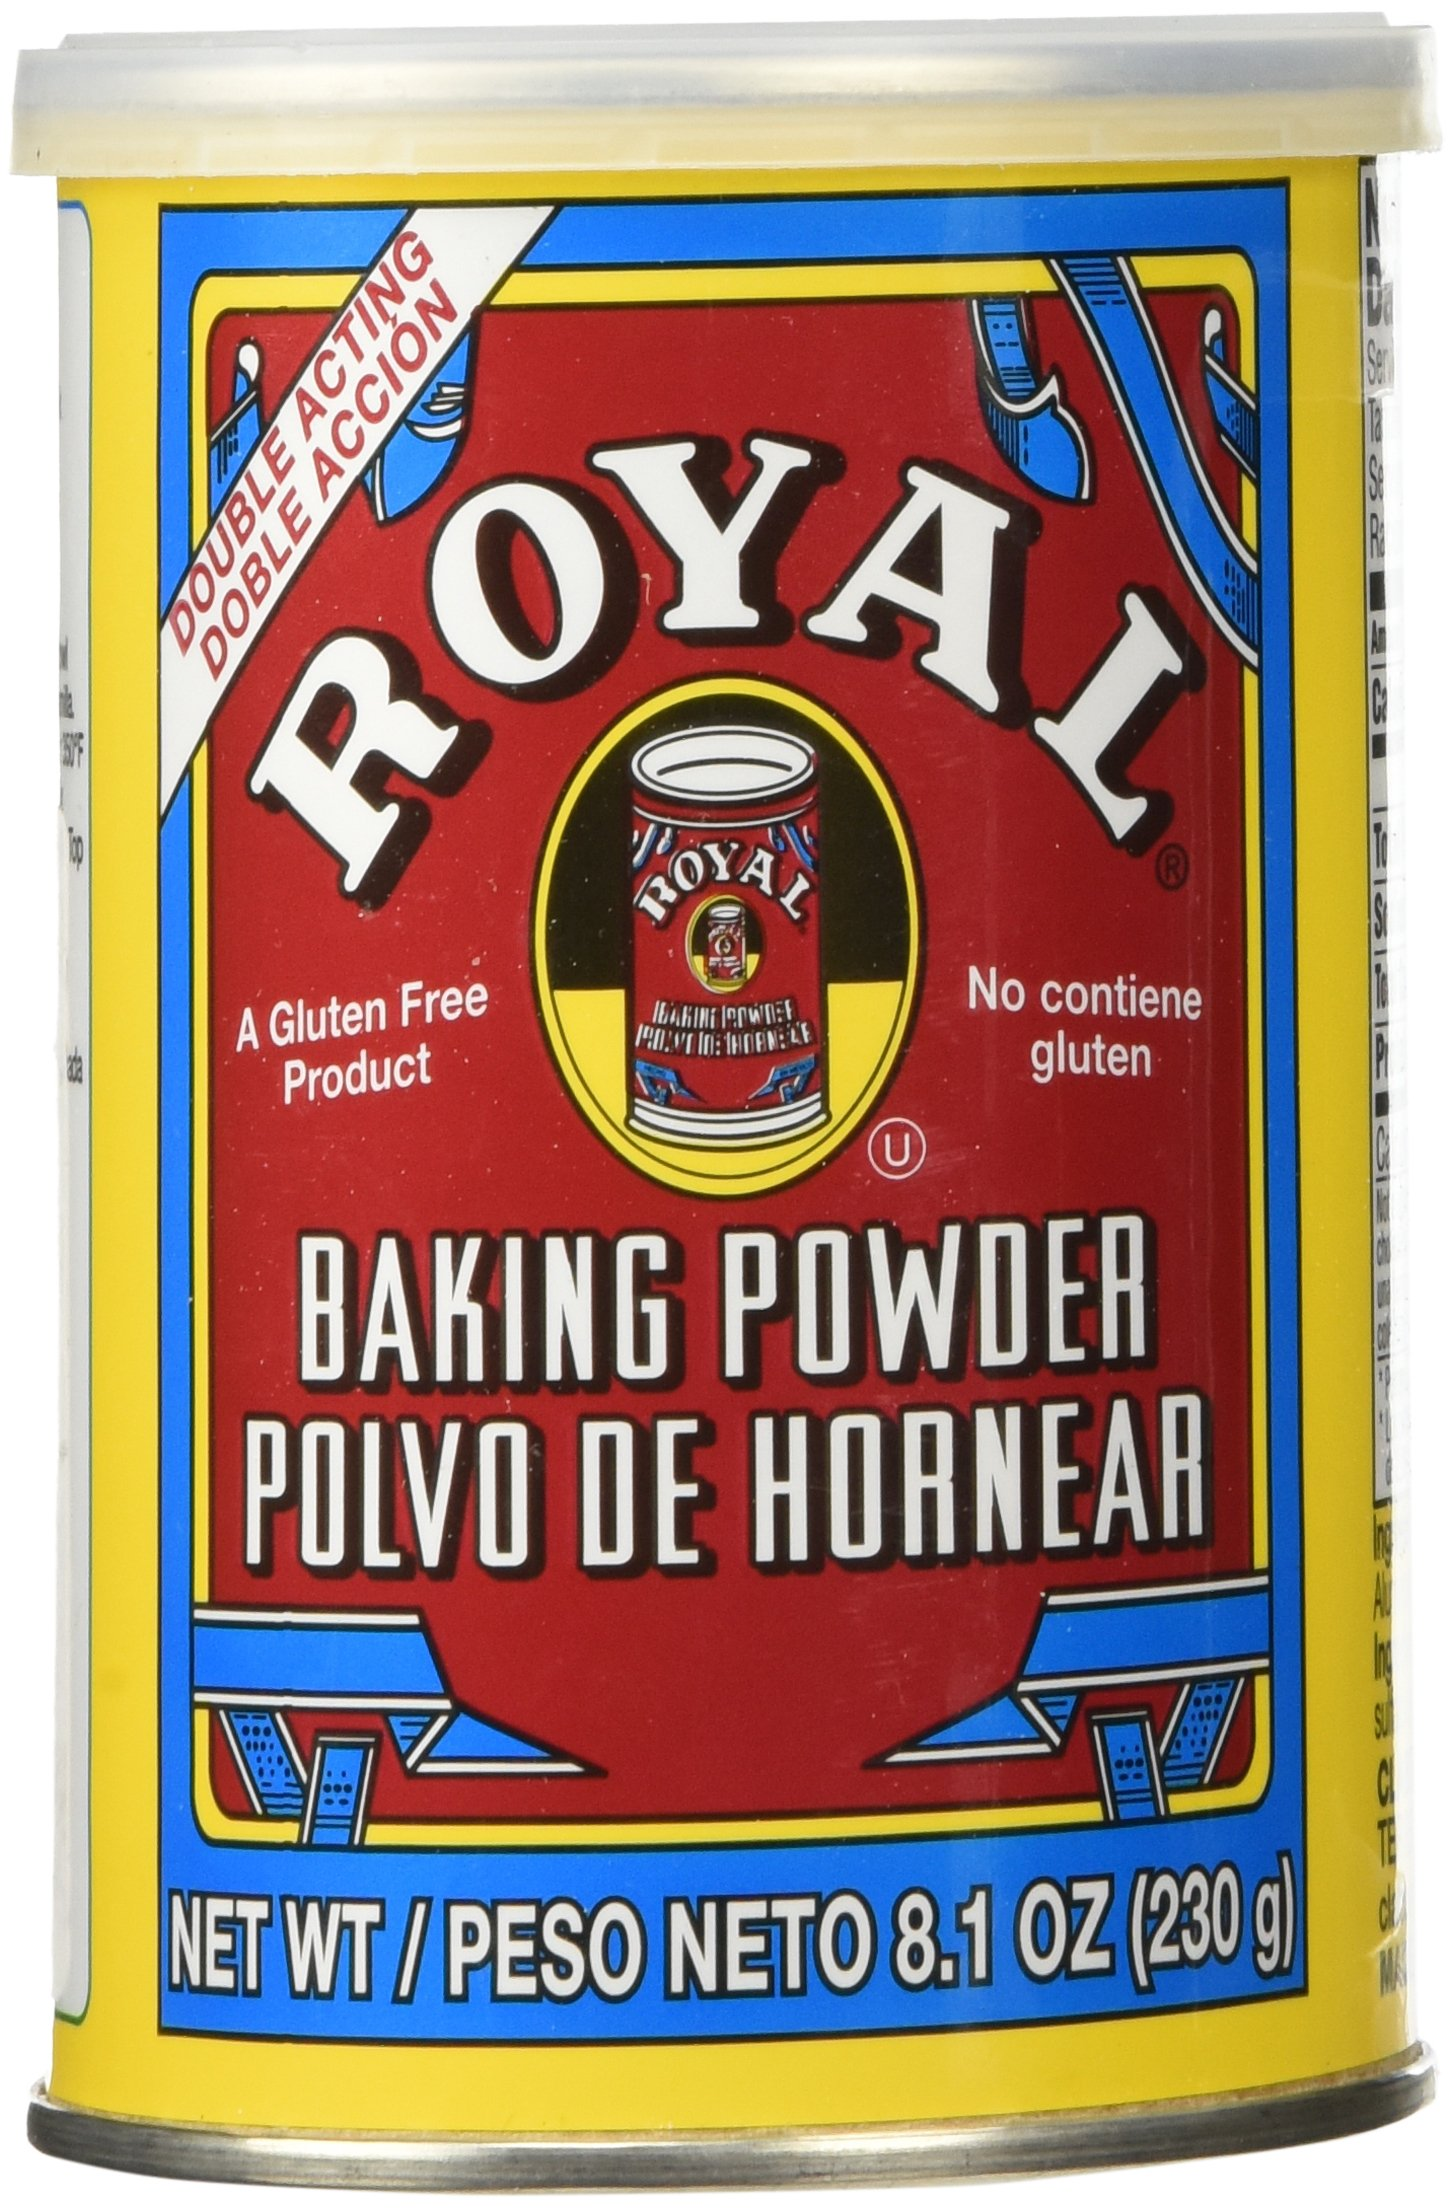 Royal Baking Powder, 8.1 Ounce